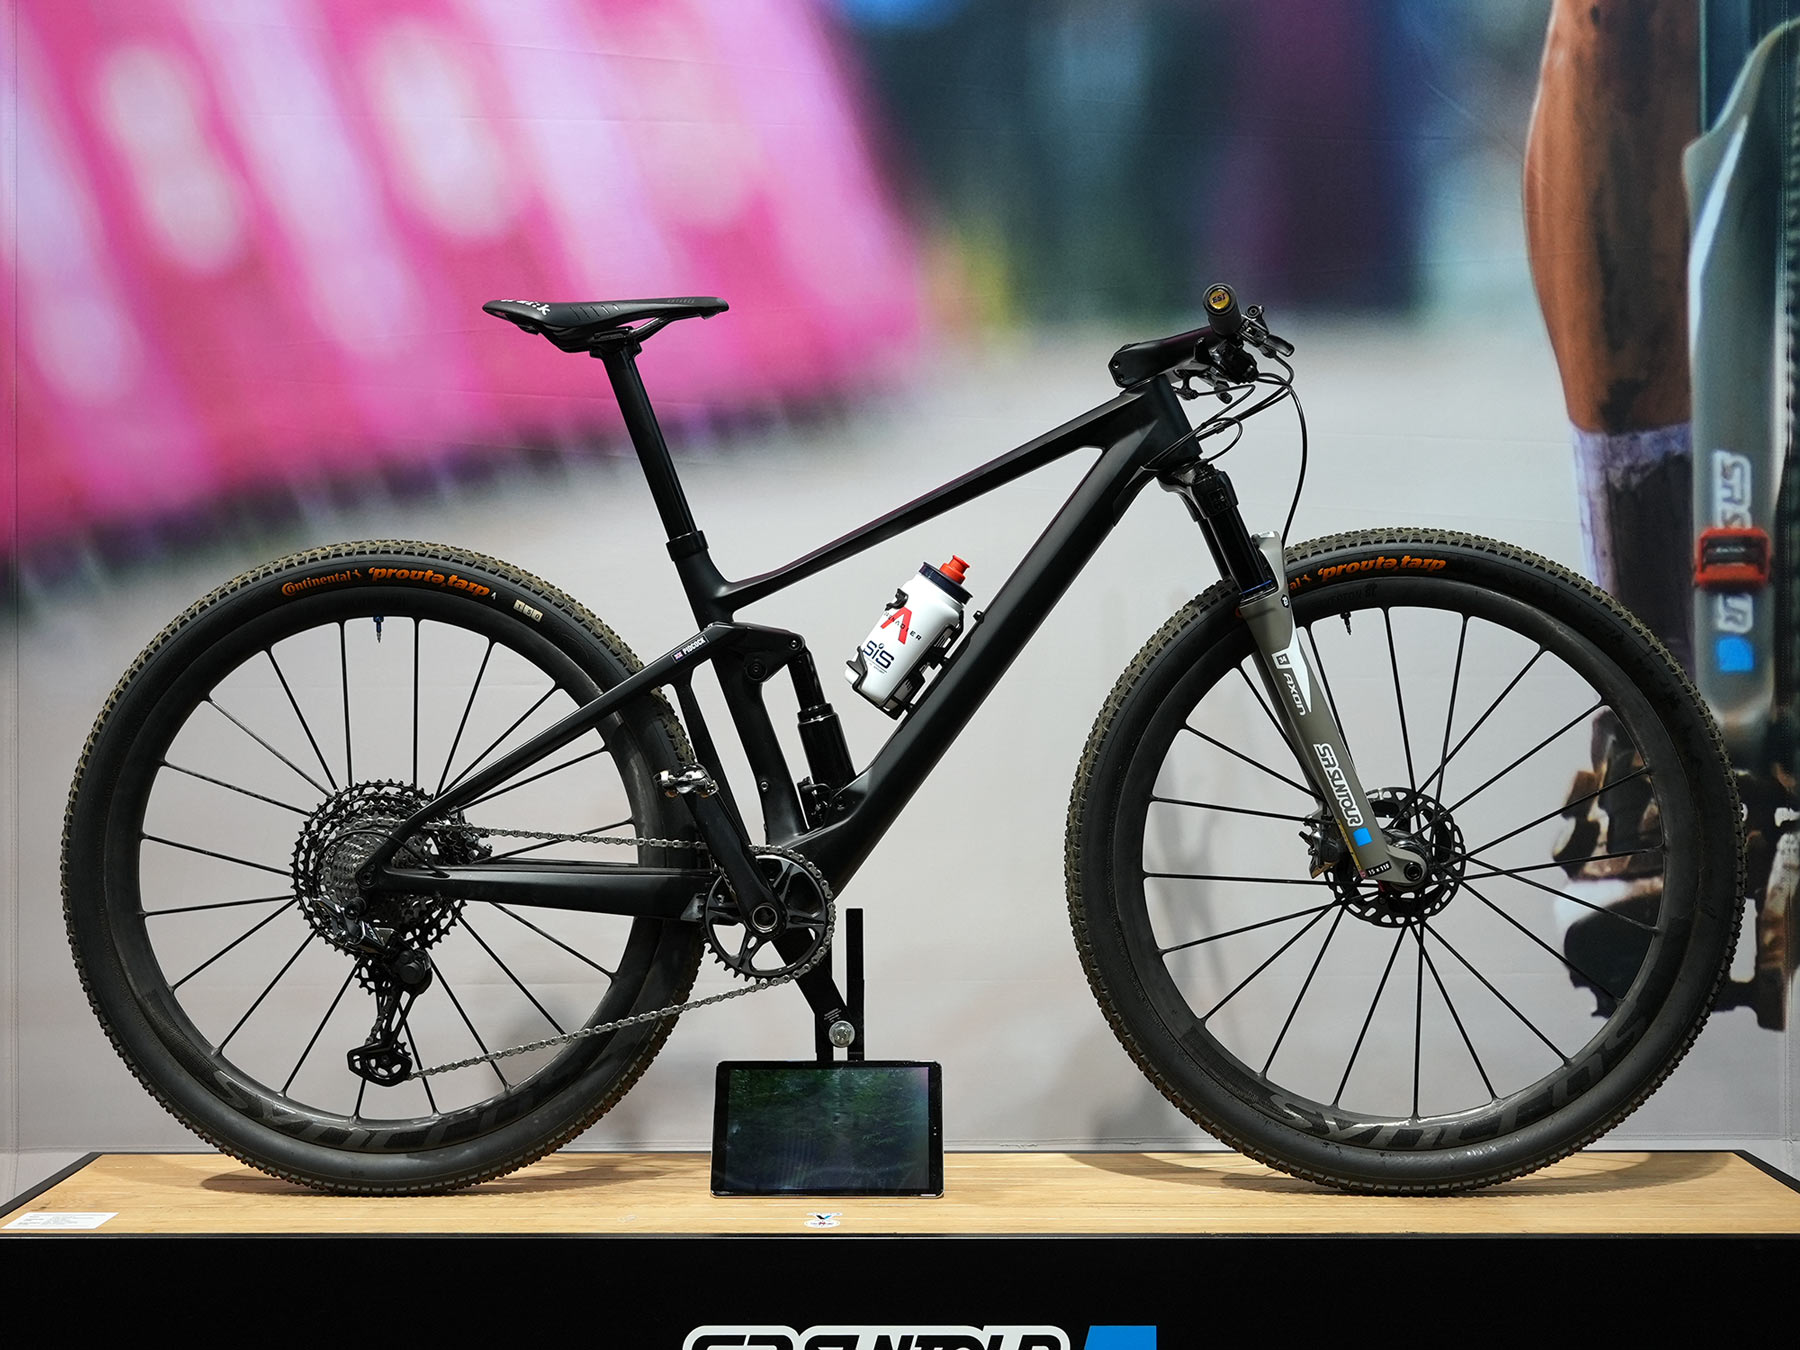 tom pidcock's olympic gold medal winning xc mountain bike with prototype SR Suntour electronic suspension shown at eurobike 2021